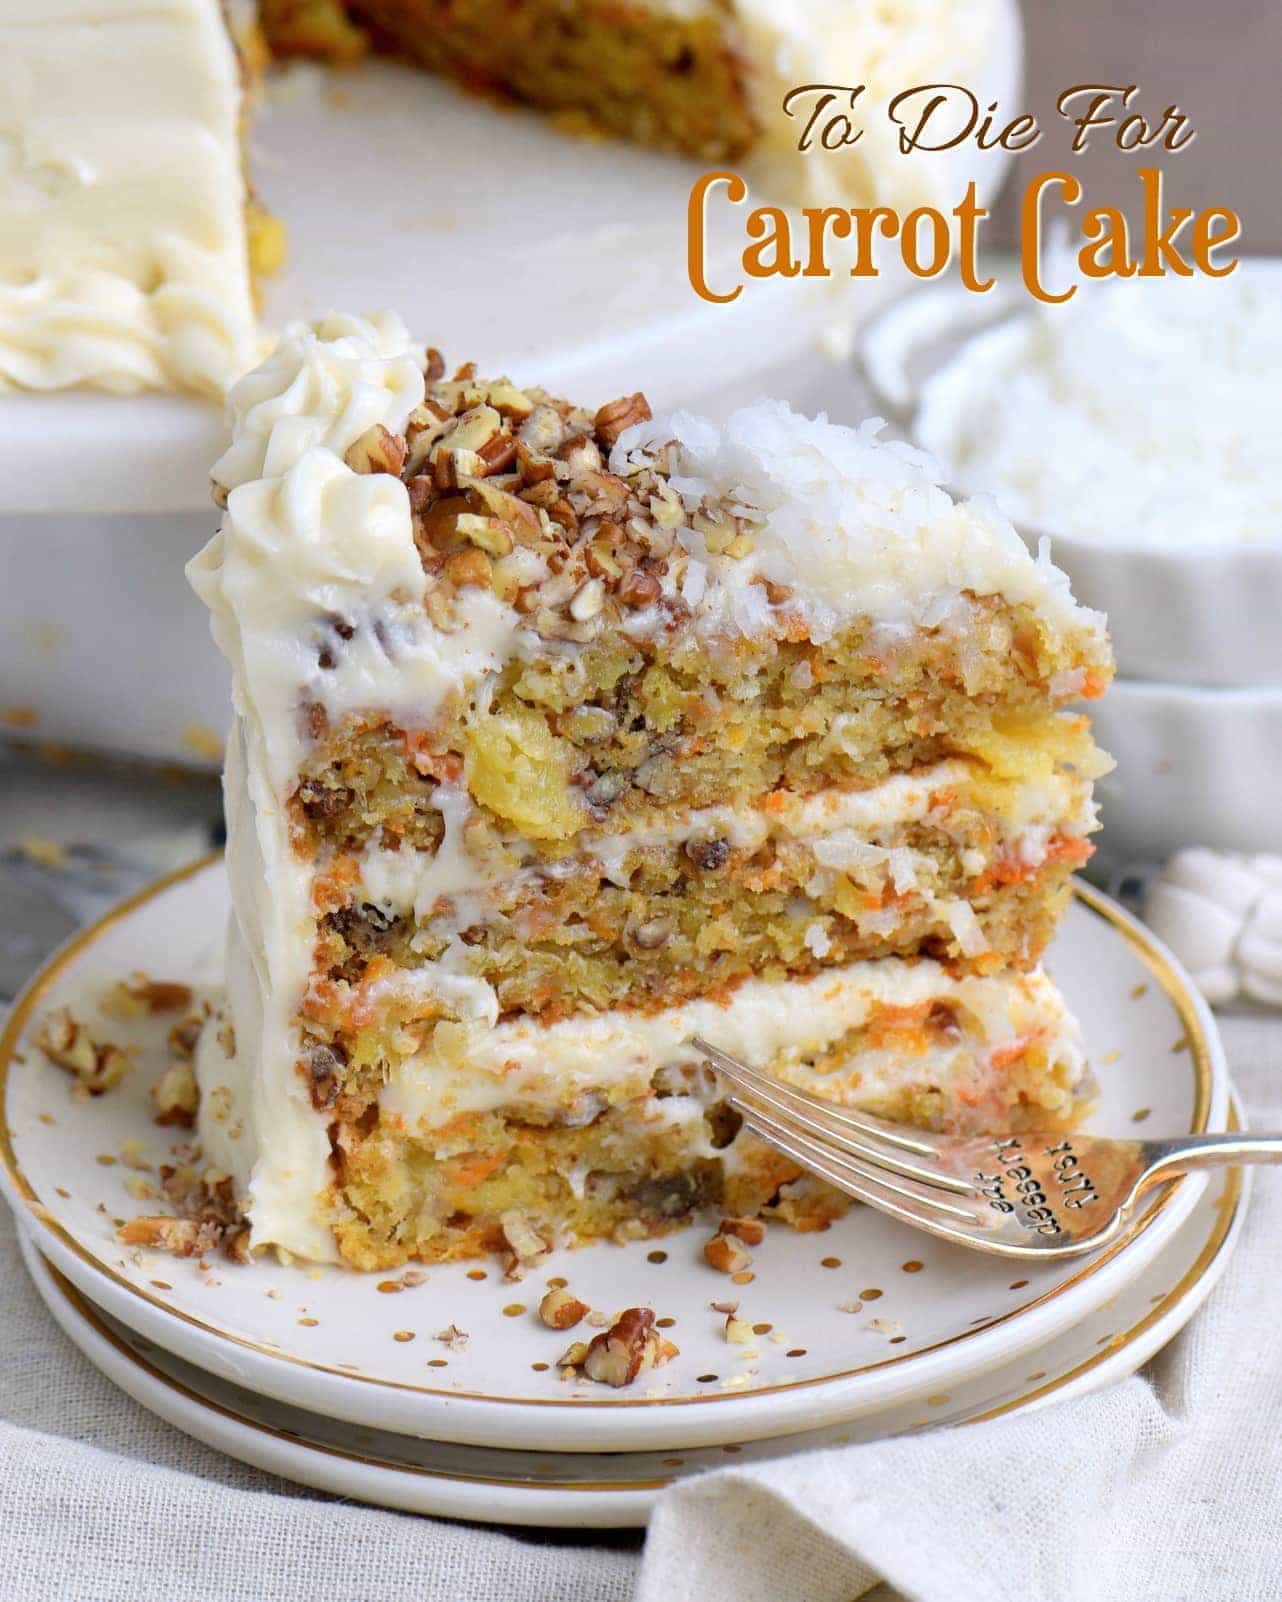 To For Carrot Cake